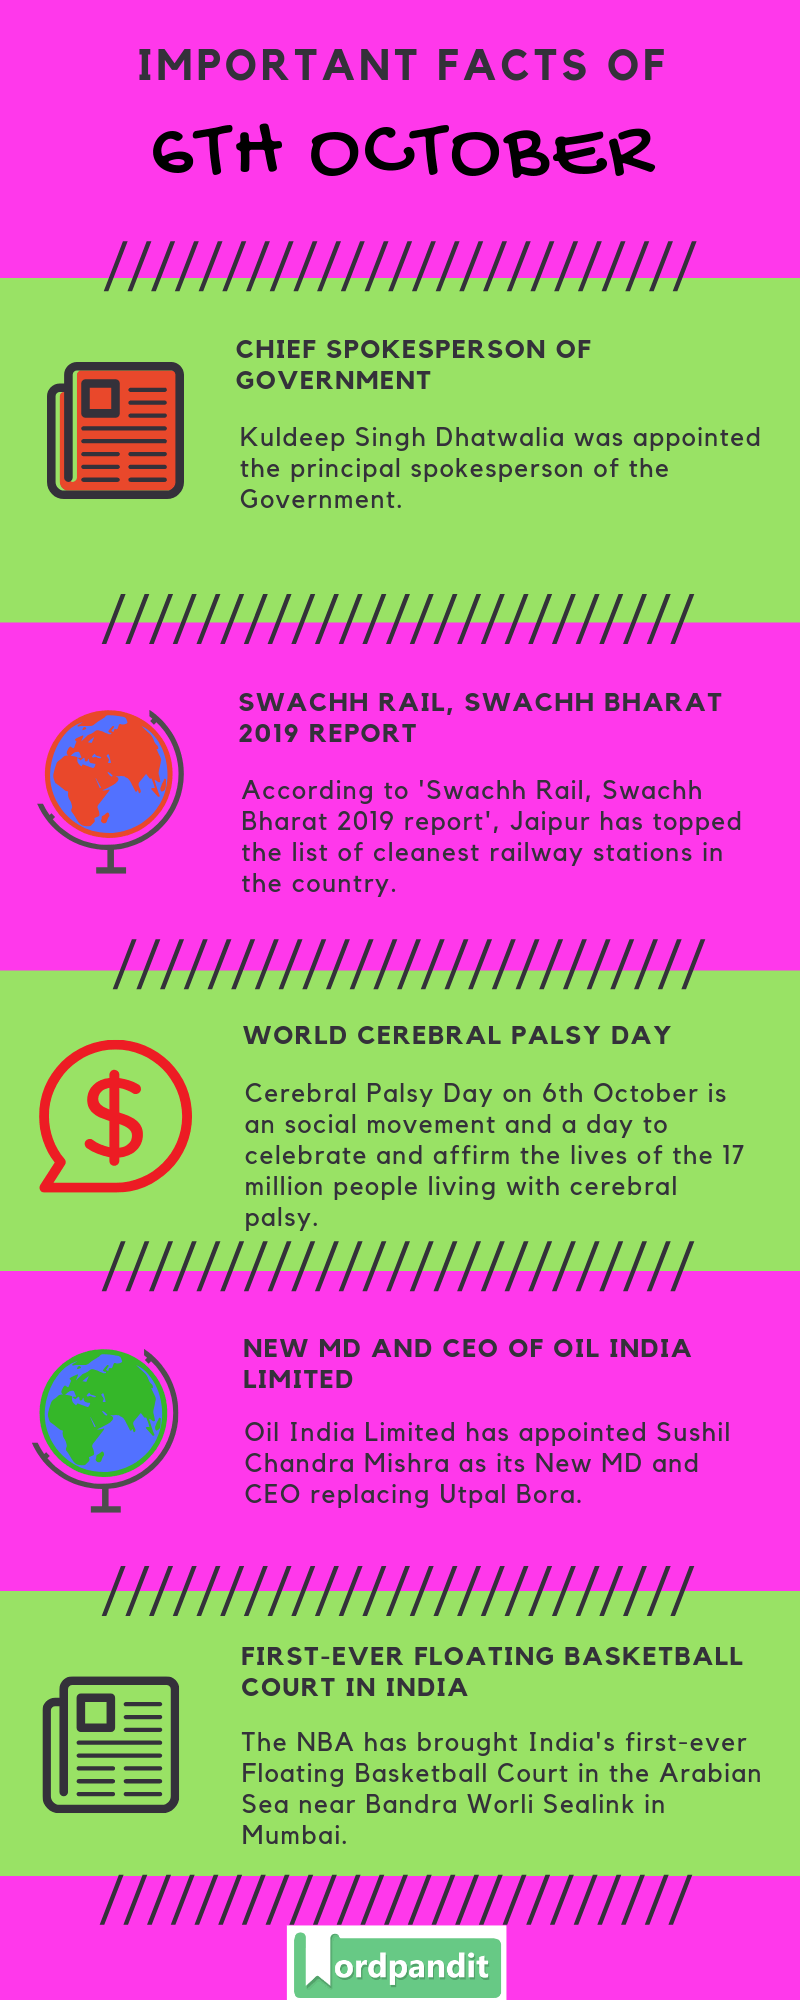 Daily Current Affairs 6 October 2019 Current Affairs Quiz 6 October 2019 Current Affairs Infographic